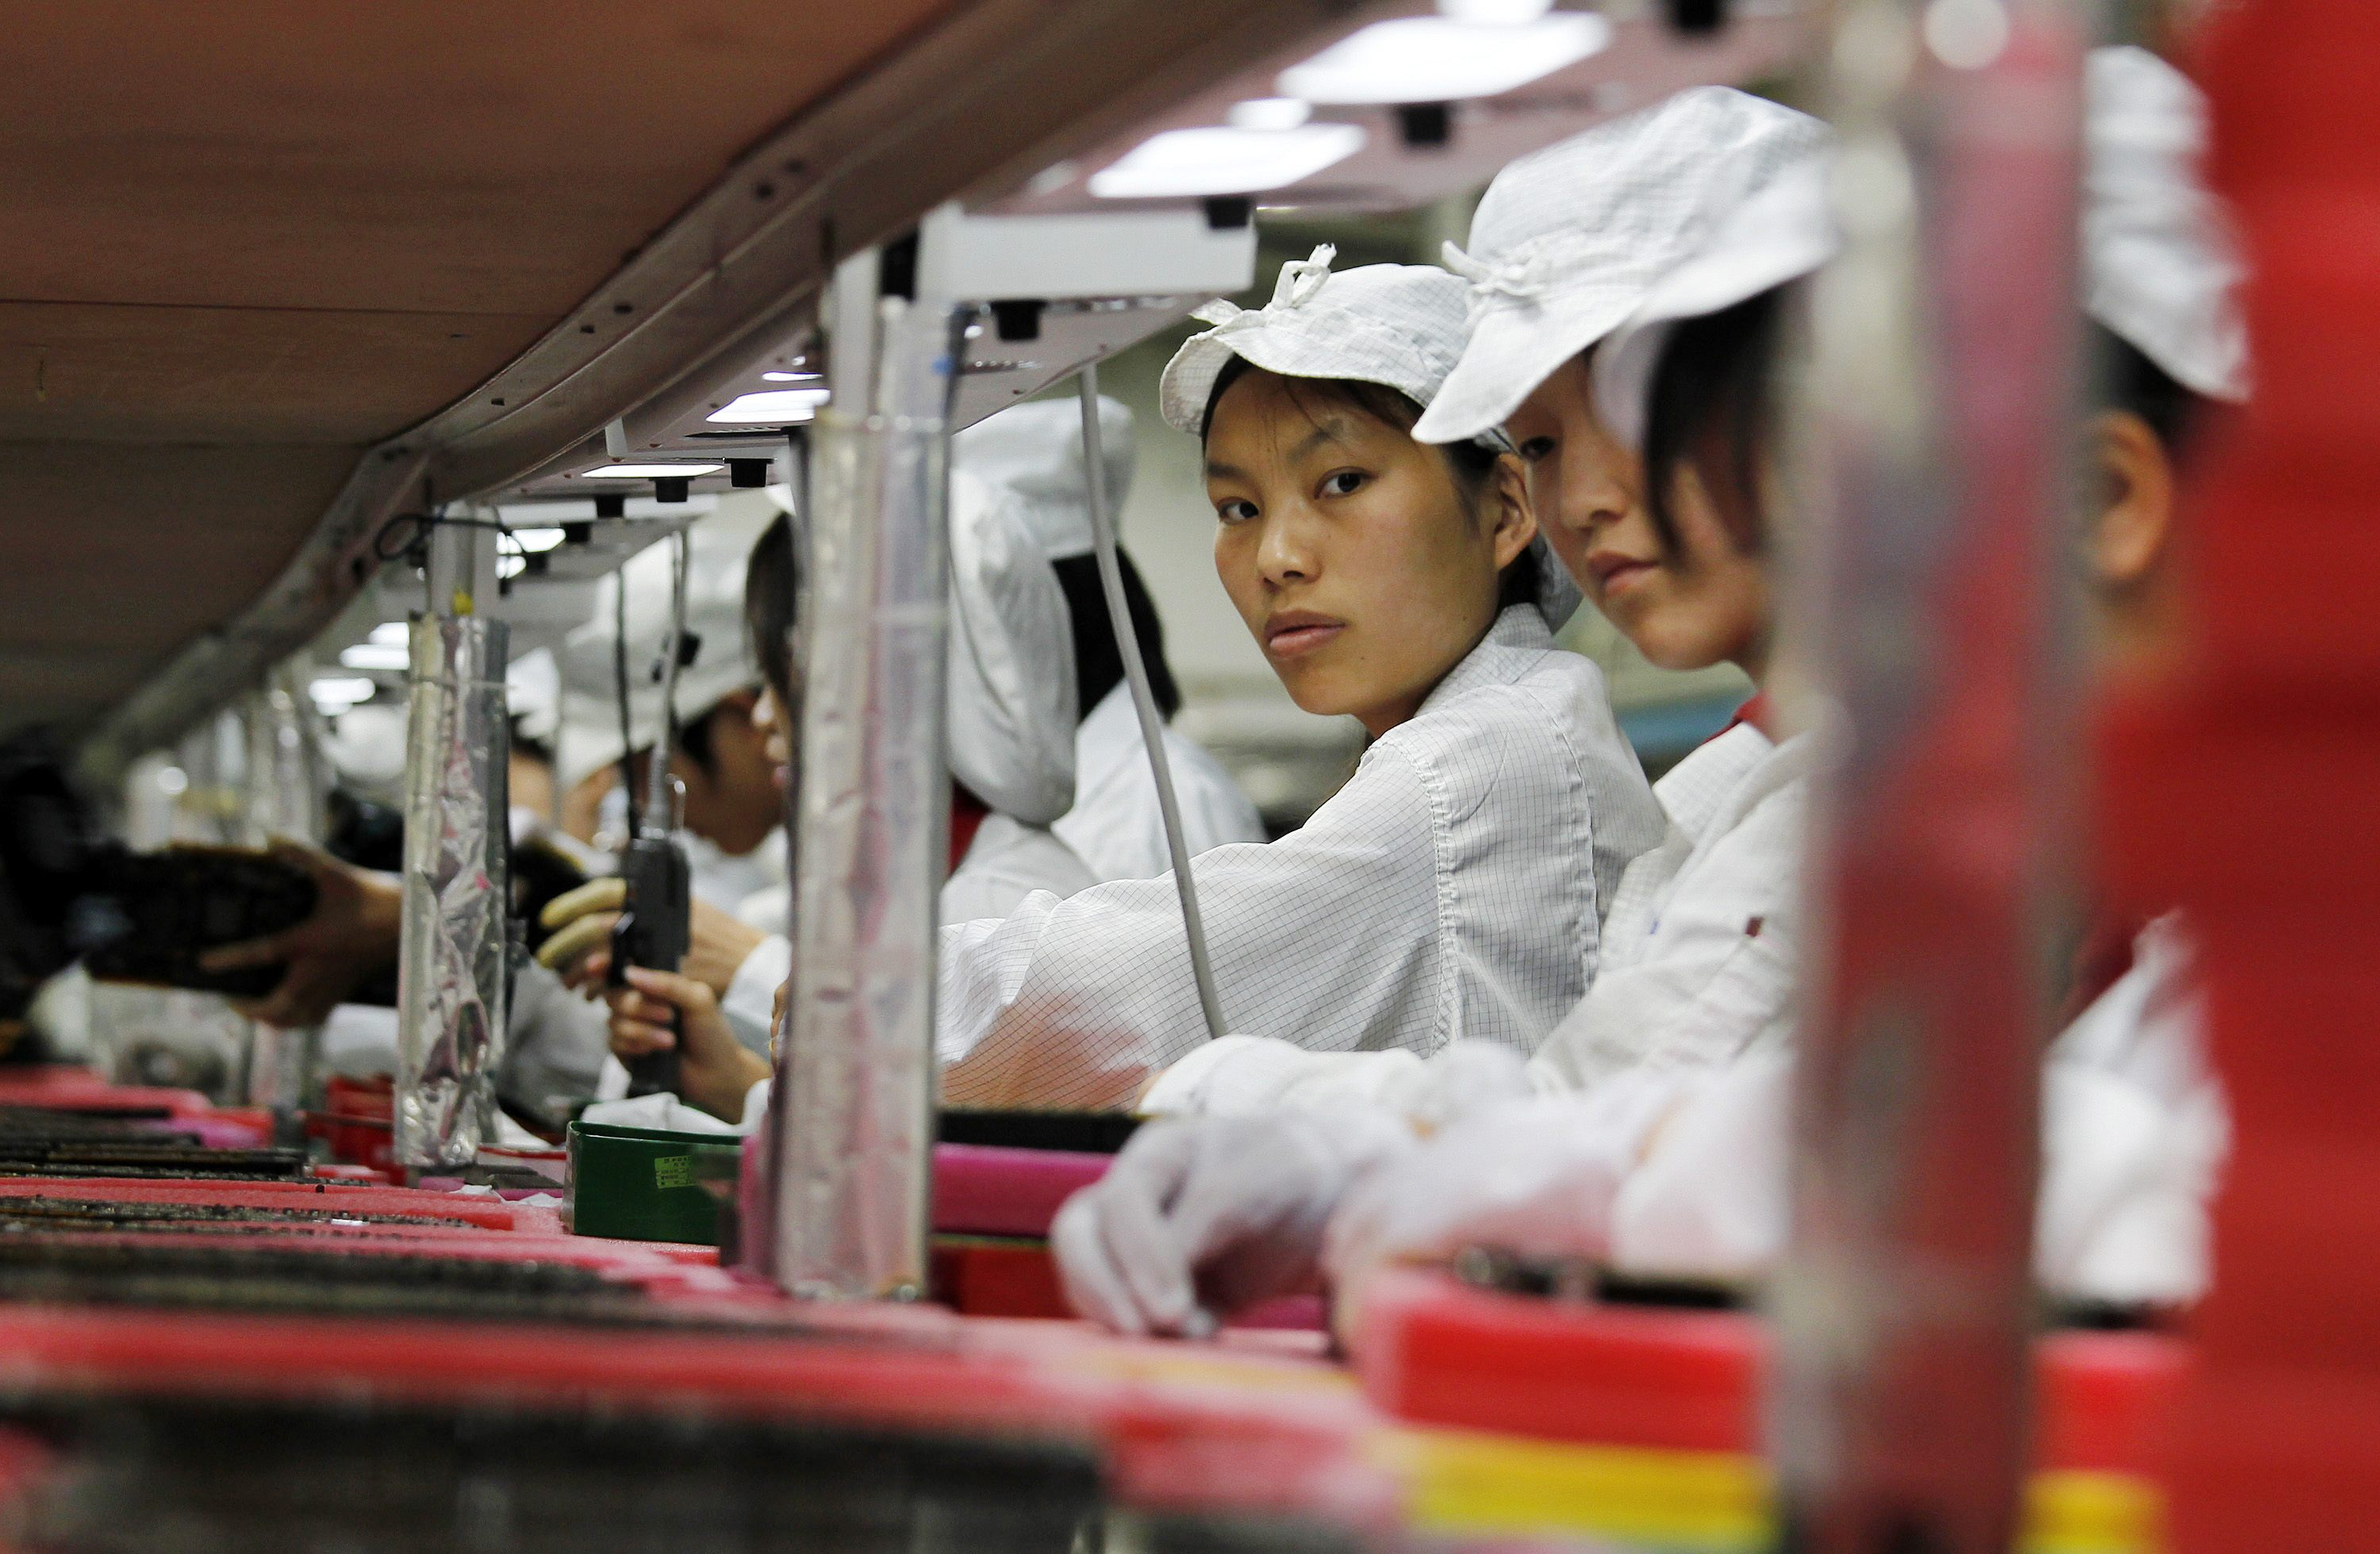 an introduction to the history of manufacturing and industry in china The history of the automobile begins with the technological breakthroughs that occurred in europe during the early 1800's and continues a century later with the pioneering efforts of american manufactures to begin mass-producing cars the world economic downturn leading up to world war ii led to.